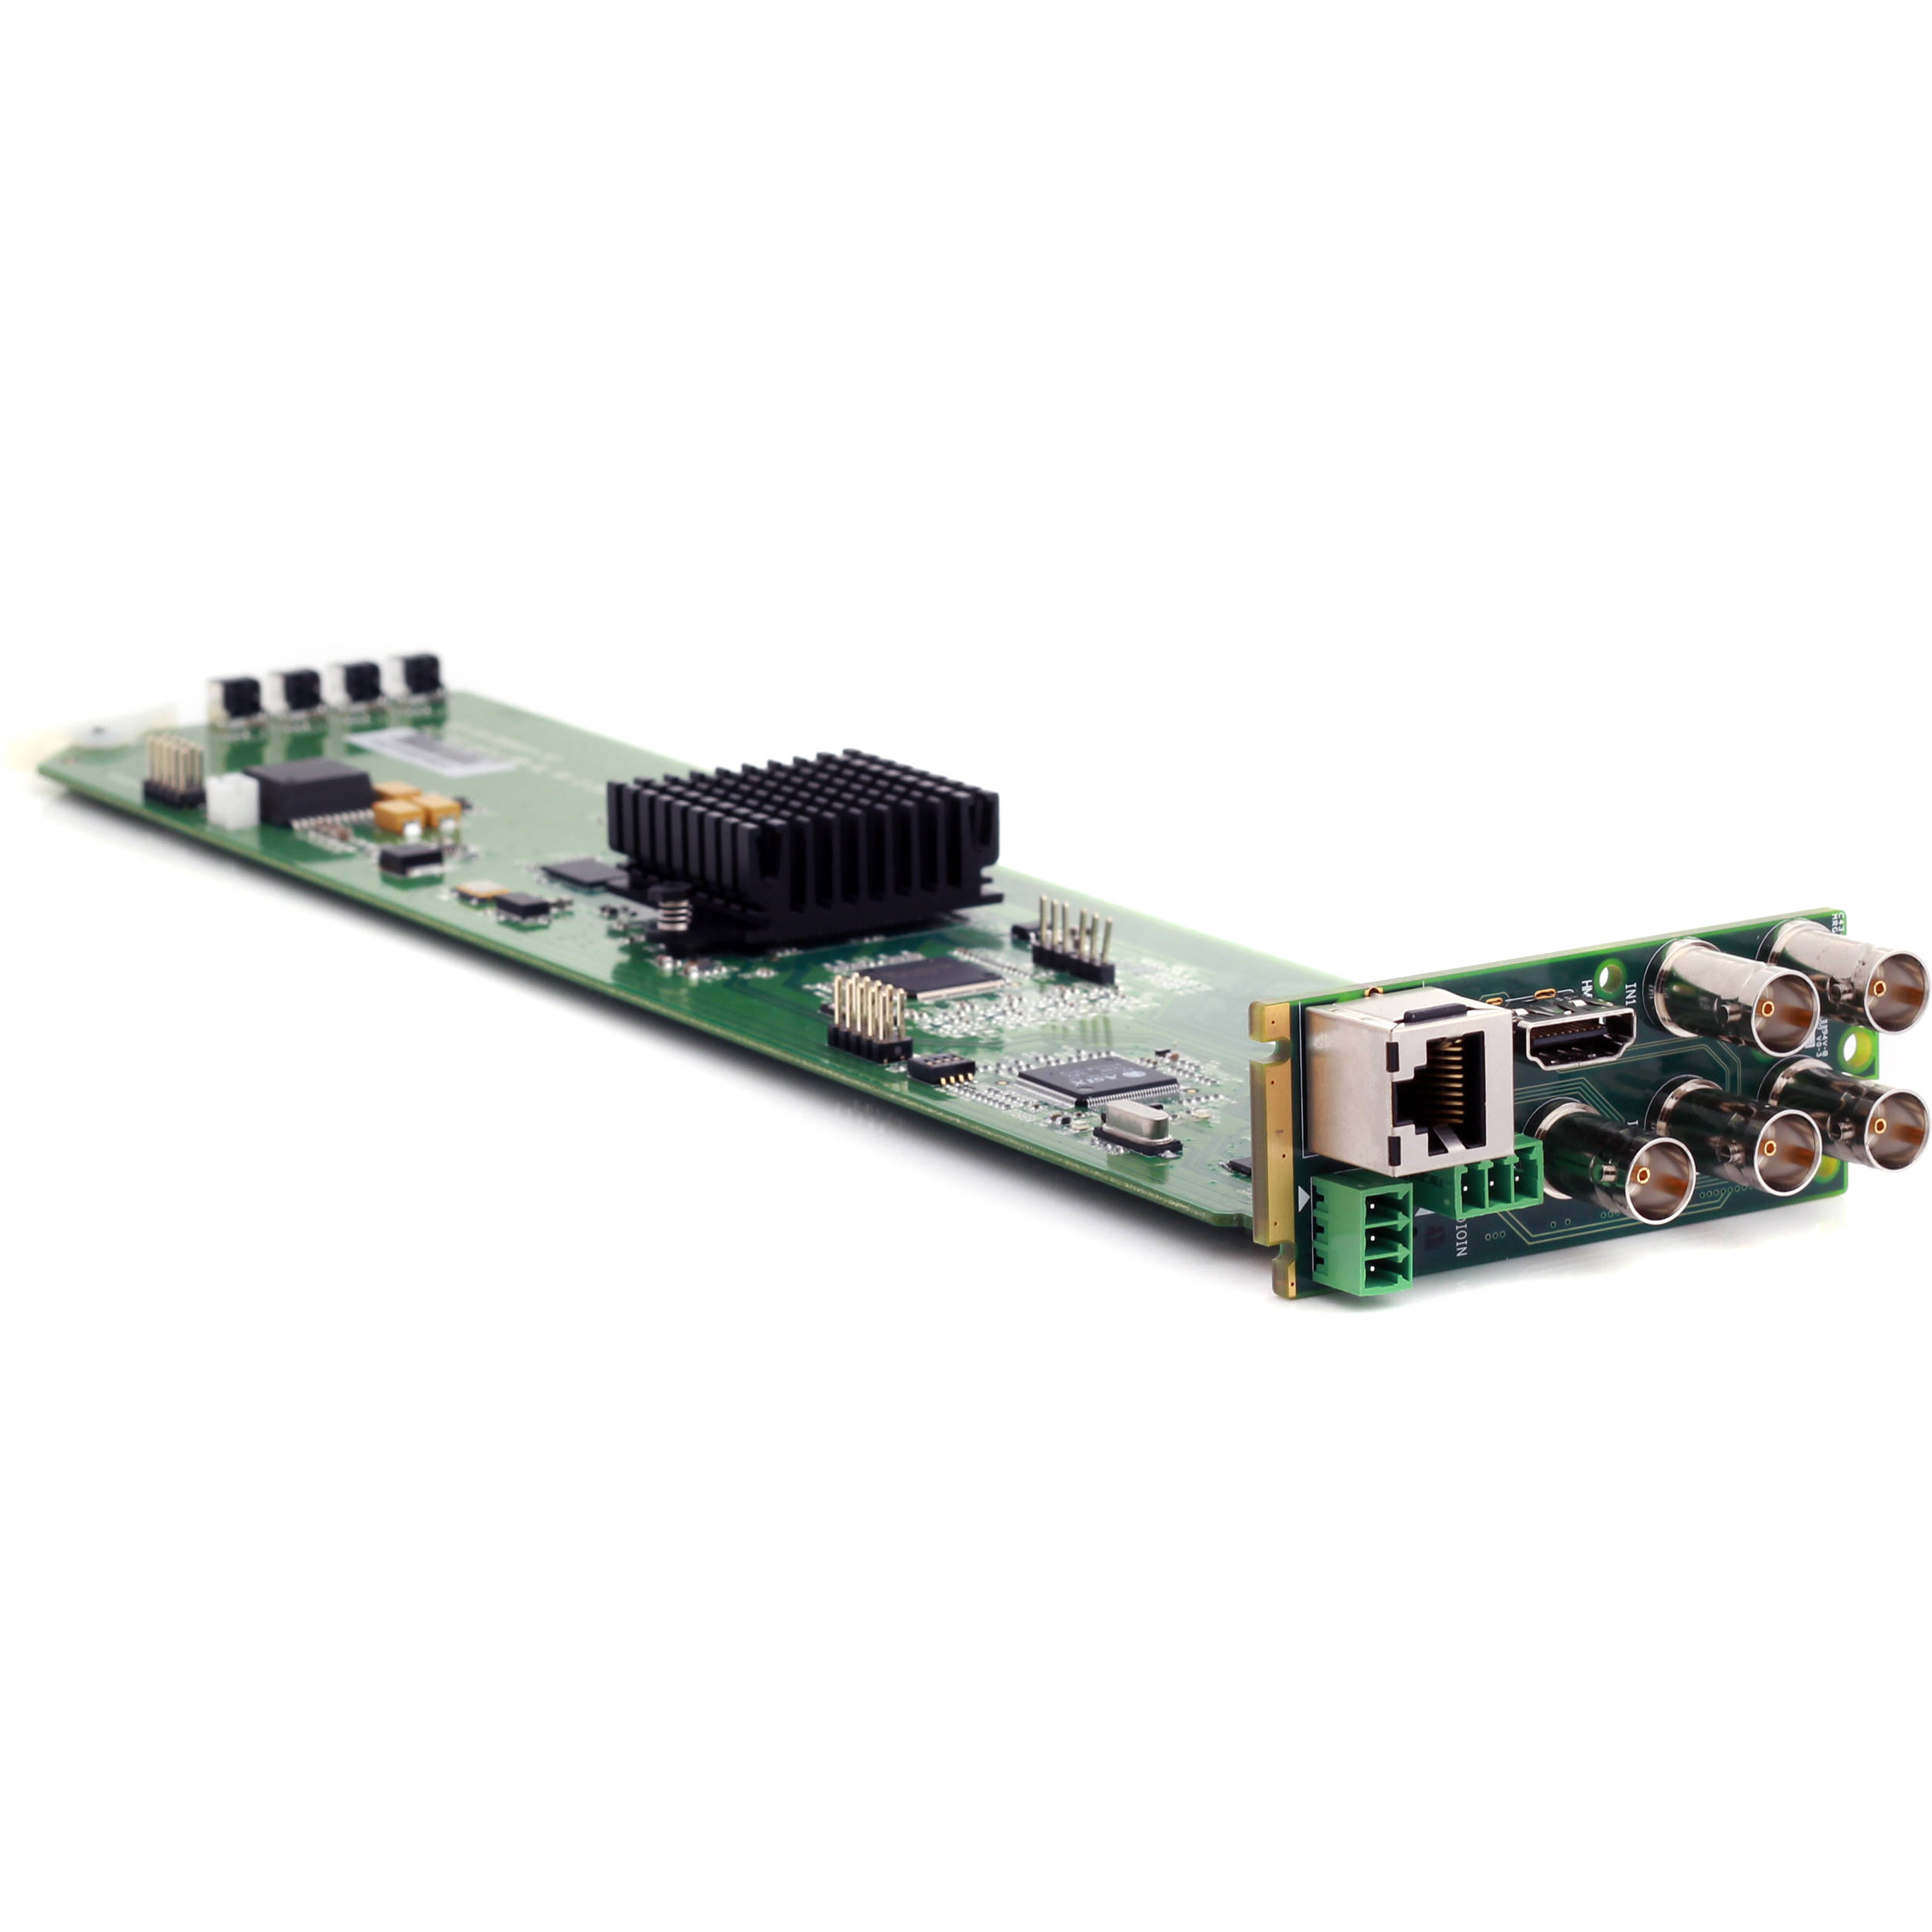 Apantac Simple Compact Video Quad Splitter Card OG-MICROQ-SET-1